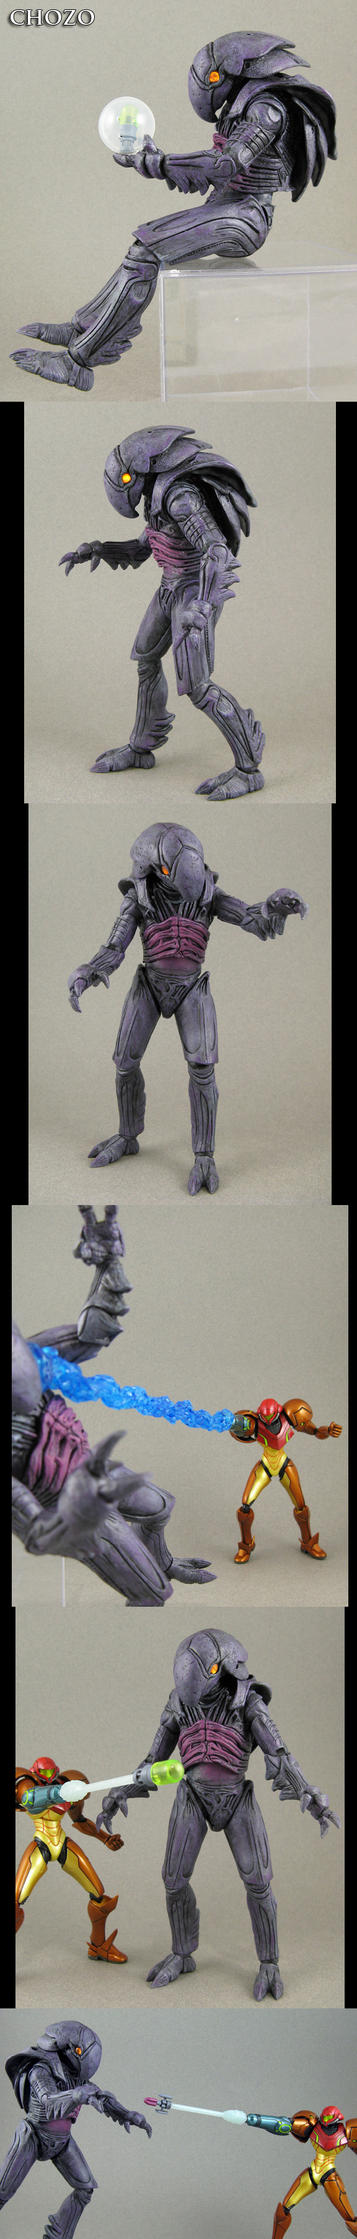 Metroid Chozo Statue custom figure by Jin-Saotome